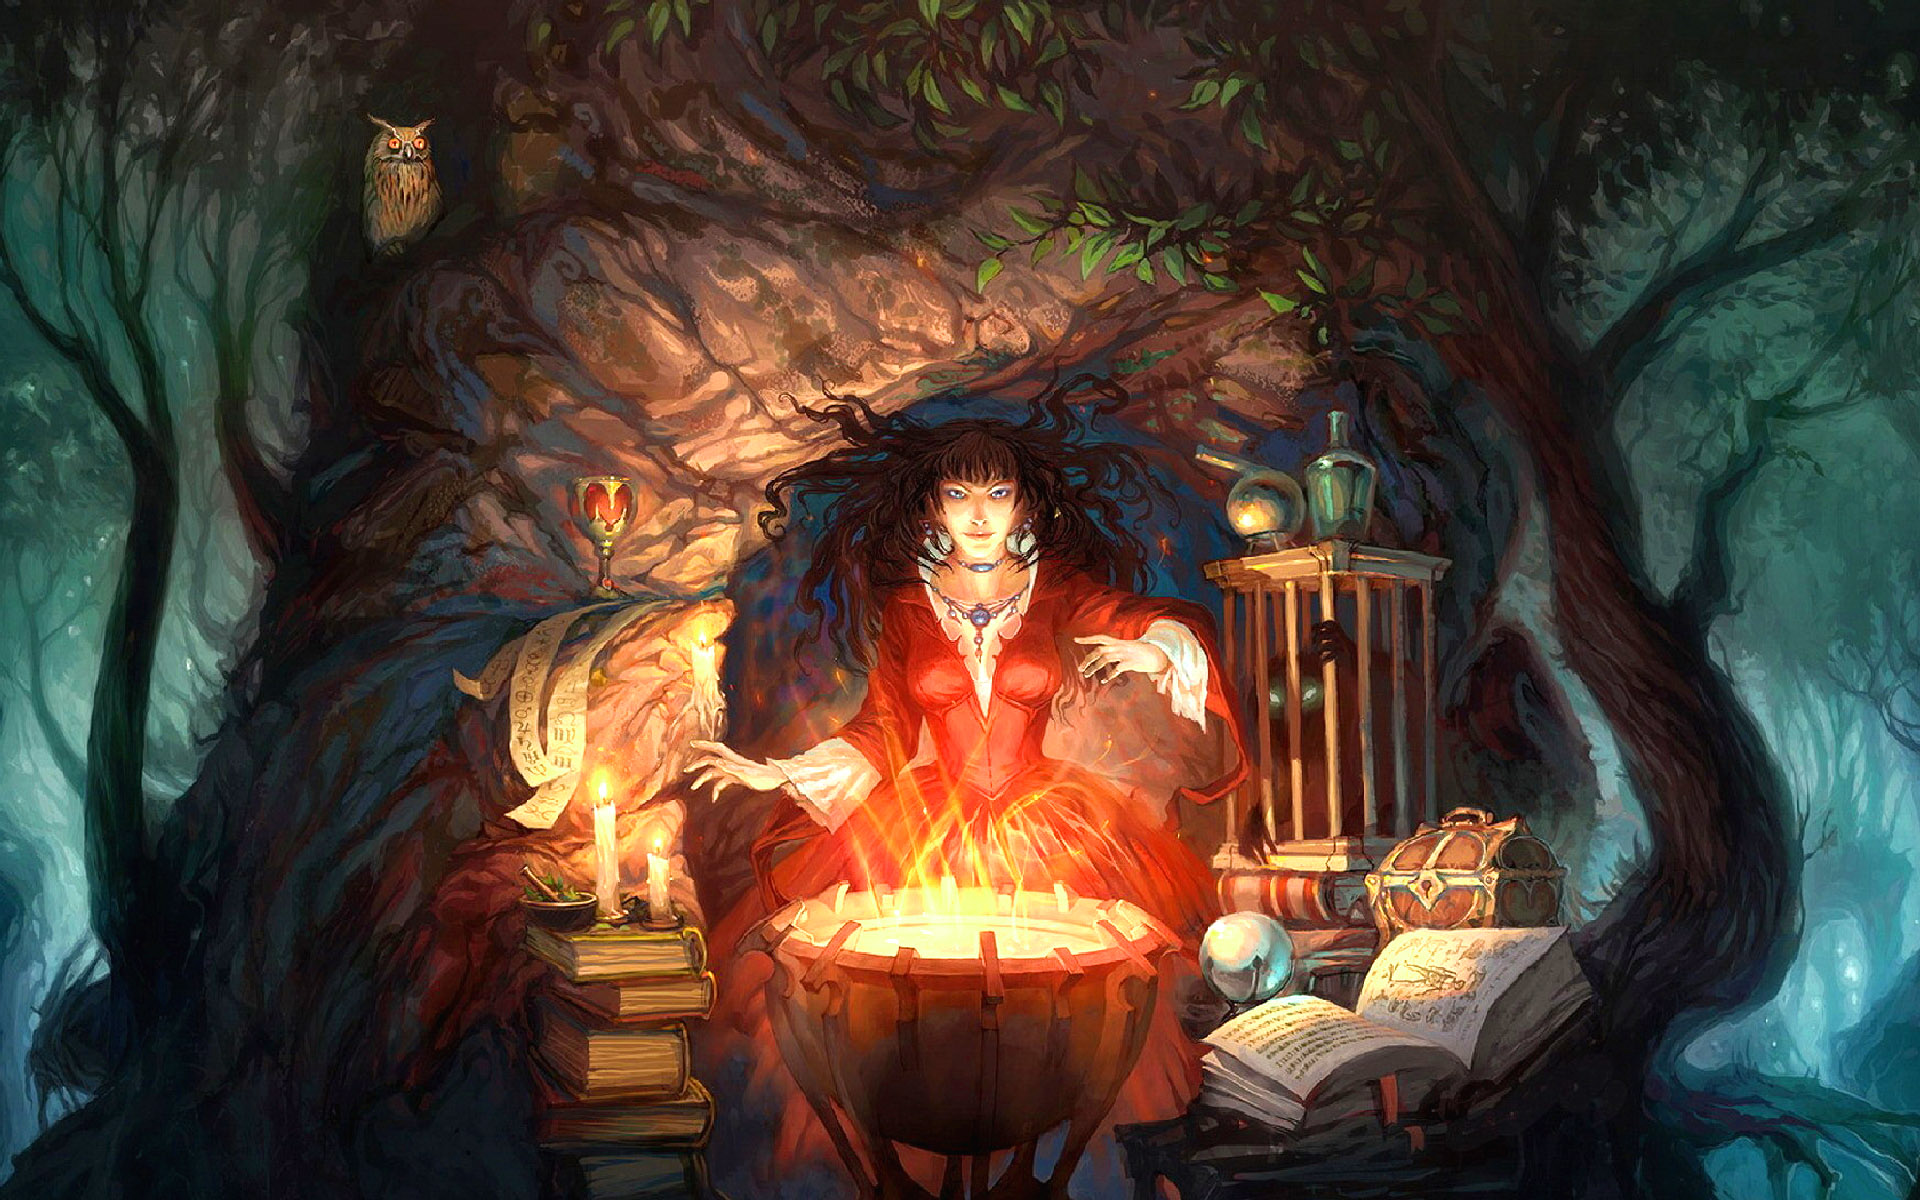 Best 56 Spellbook Wallpaper on HipWallpaper Spellbook Wallpaper 1920x1200